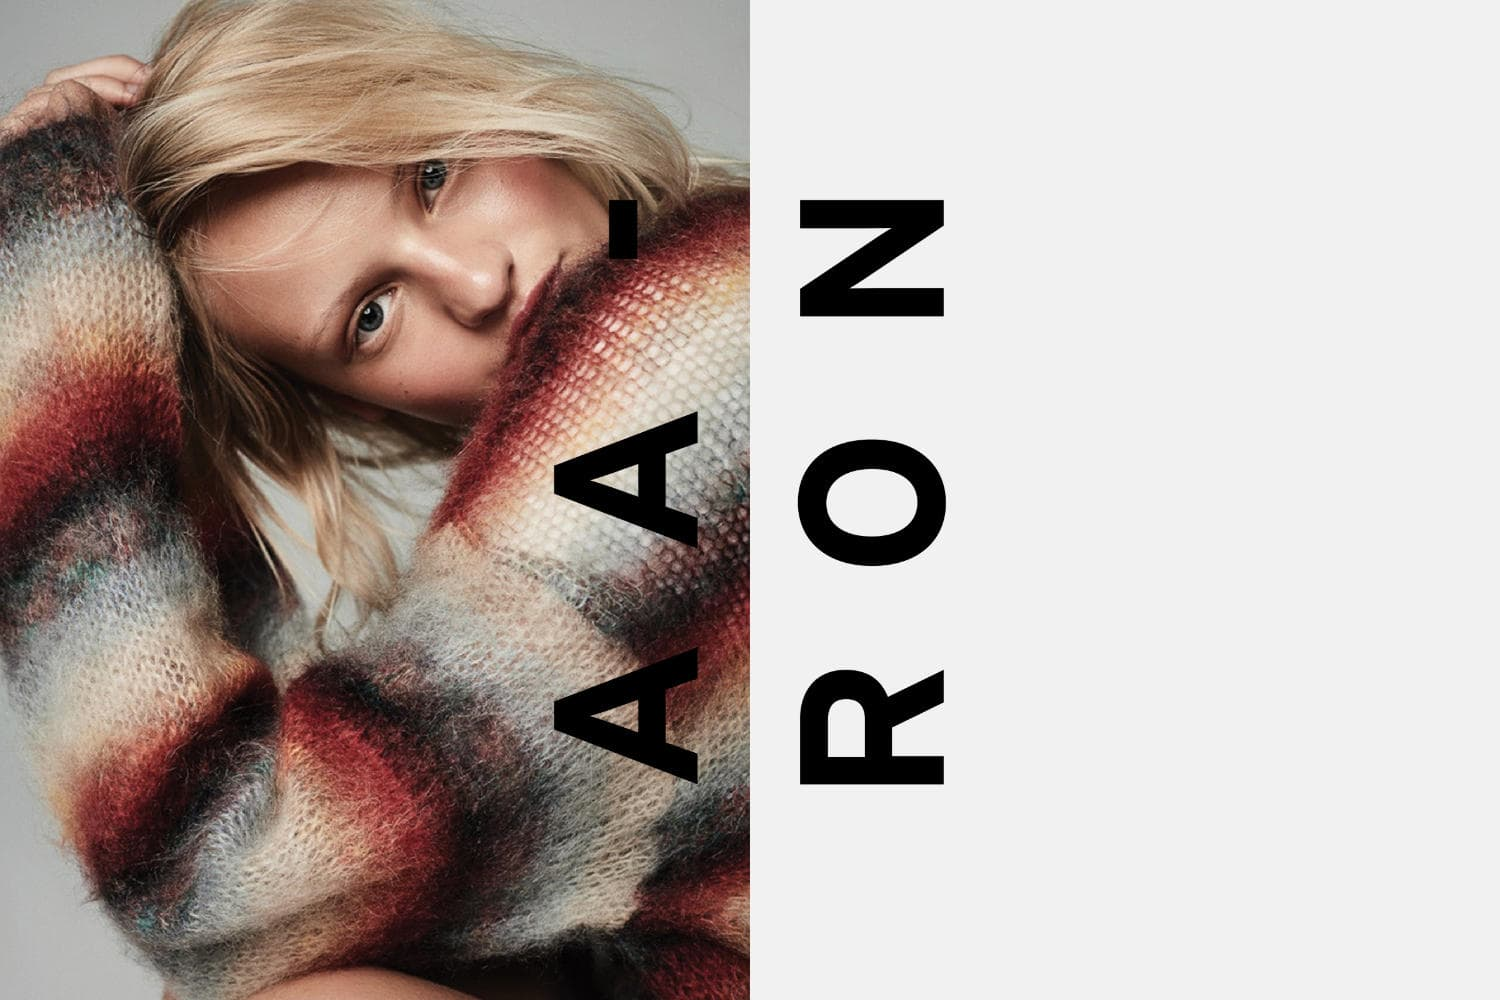 Aaron Smith Photography logo over a photo of a blonde woman wearing a chunky-knit sweater.